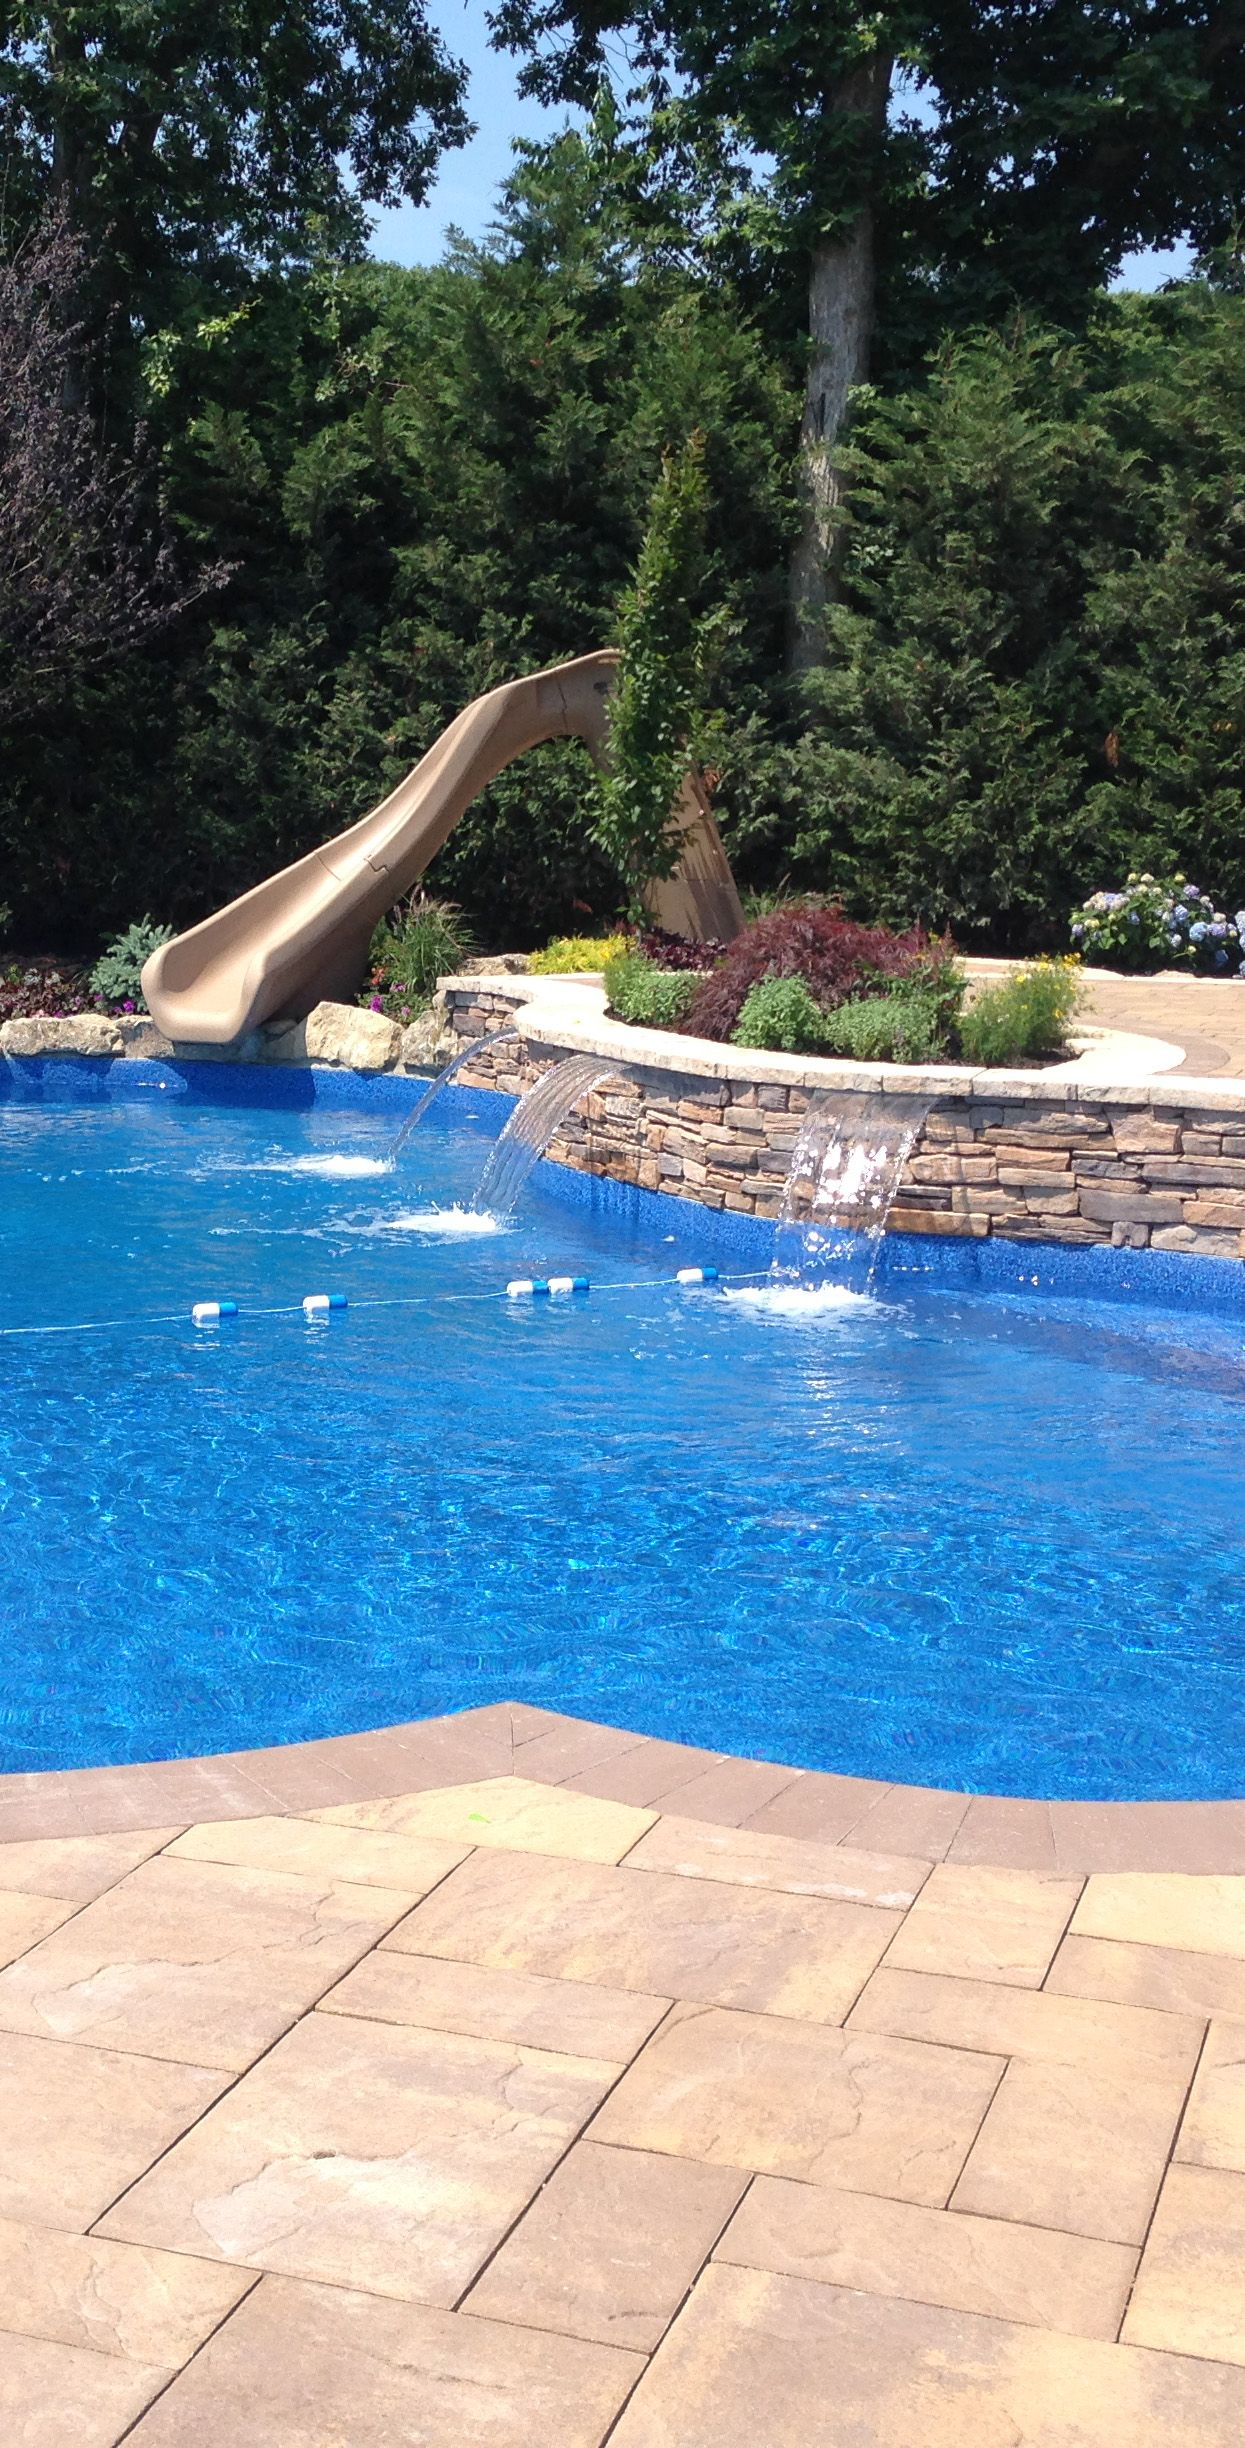 water slide sheer descent waterfalls from zodiacpoolusa and